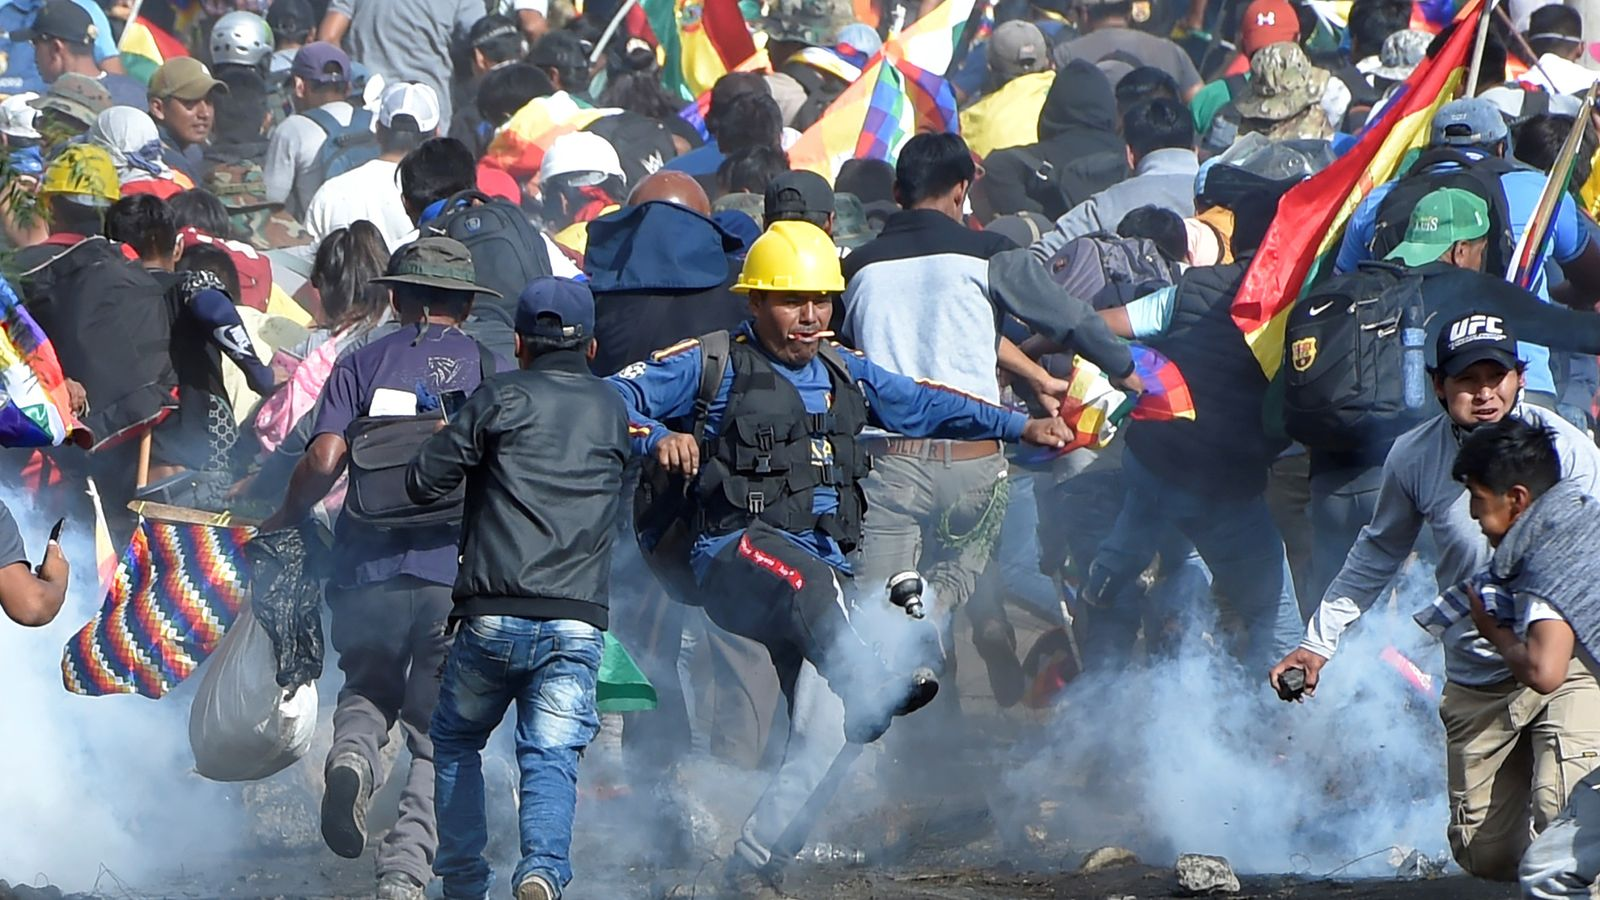 Civil unrest Bolivia Was It A Coup? What Exactly Happened​ In Bolivia?